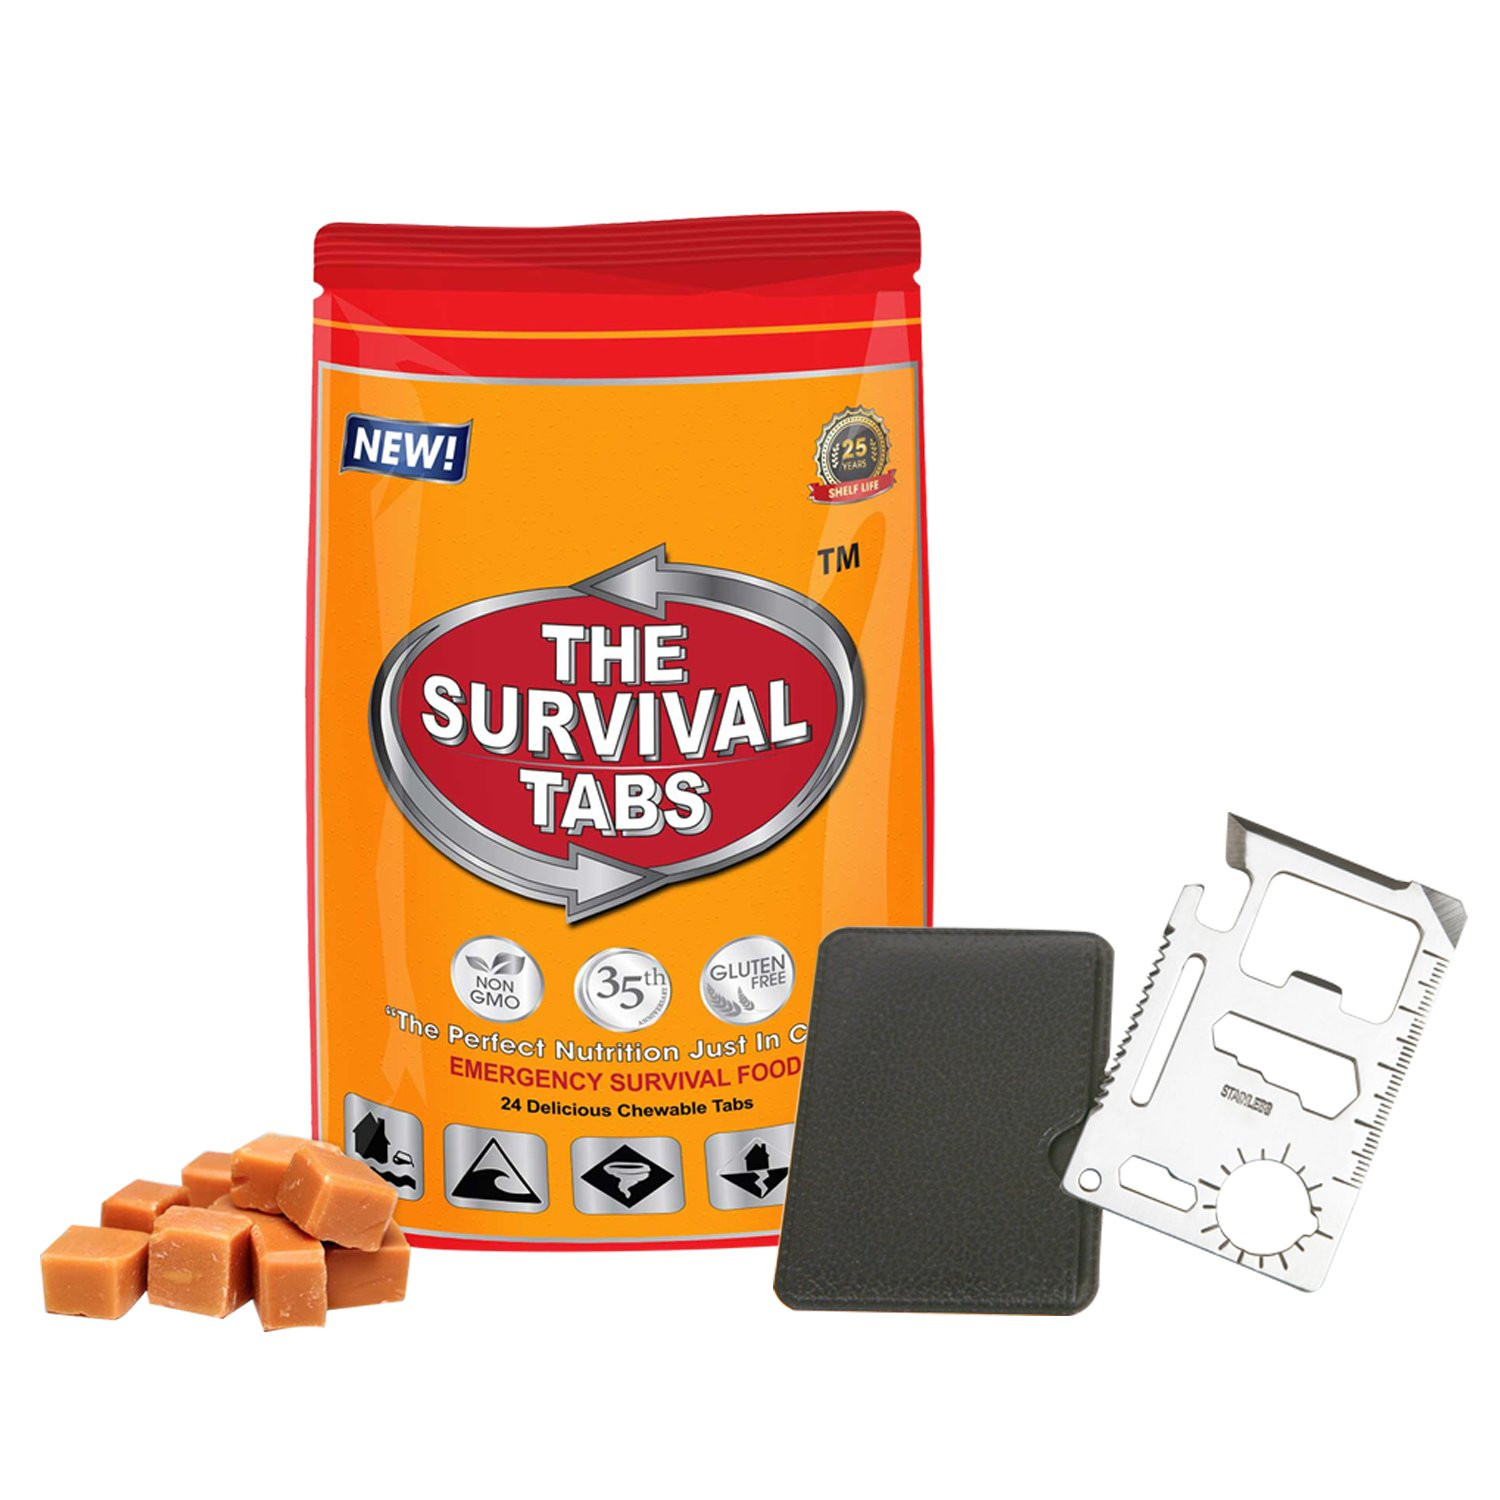 11 in1 Multi Tools Hunting Survival Camping Pocket Military Credit Card Knife + New Advanced Formula MRE Meals Ready-to-eat Survival Meal 2-Day supply 24 tabs Ultimate Bugout Food 25 Years shelf life Gluten Free and Non-GMO - Butterscotch Flavor free shipping 1 piece the 3rd version steel cover credit card knife folding safety knife outdoor survival pocket wallet tool